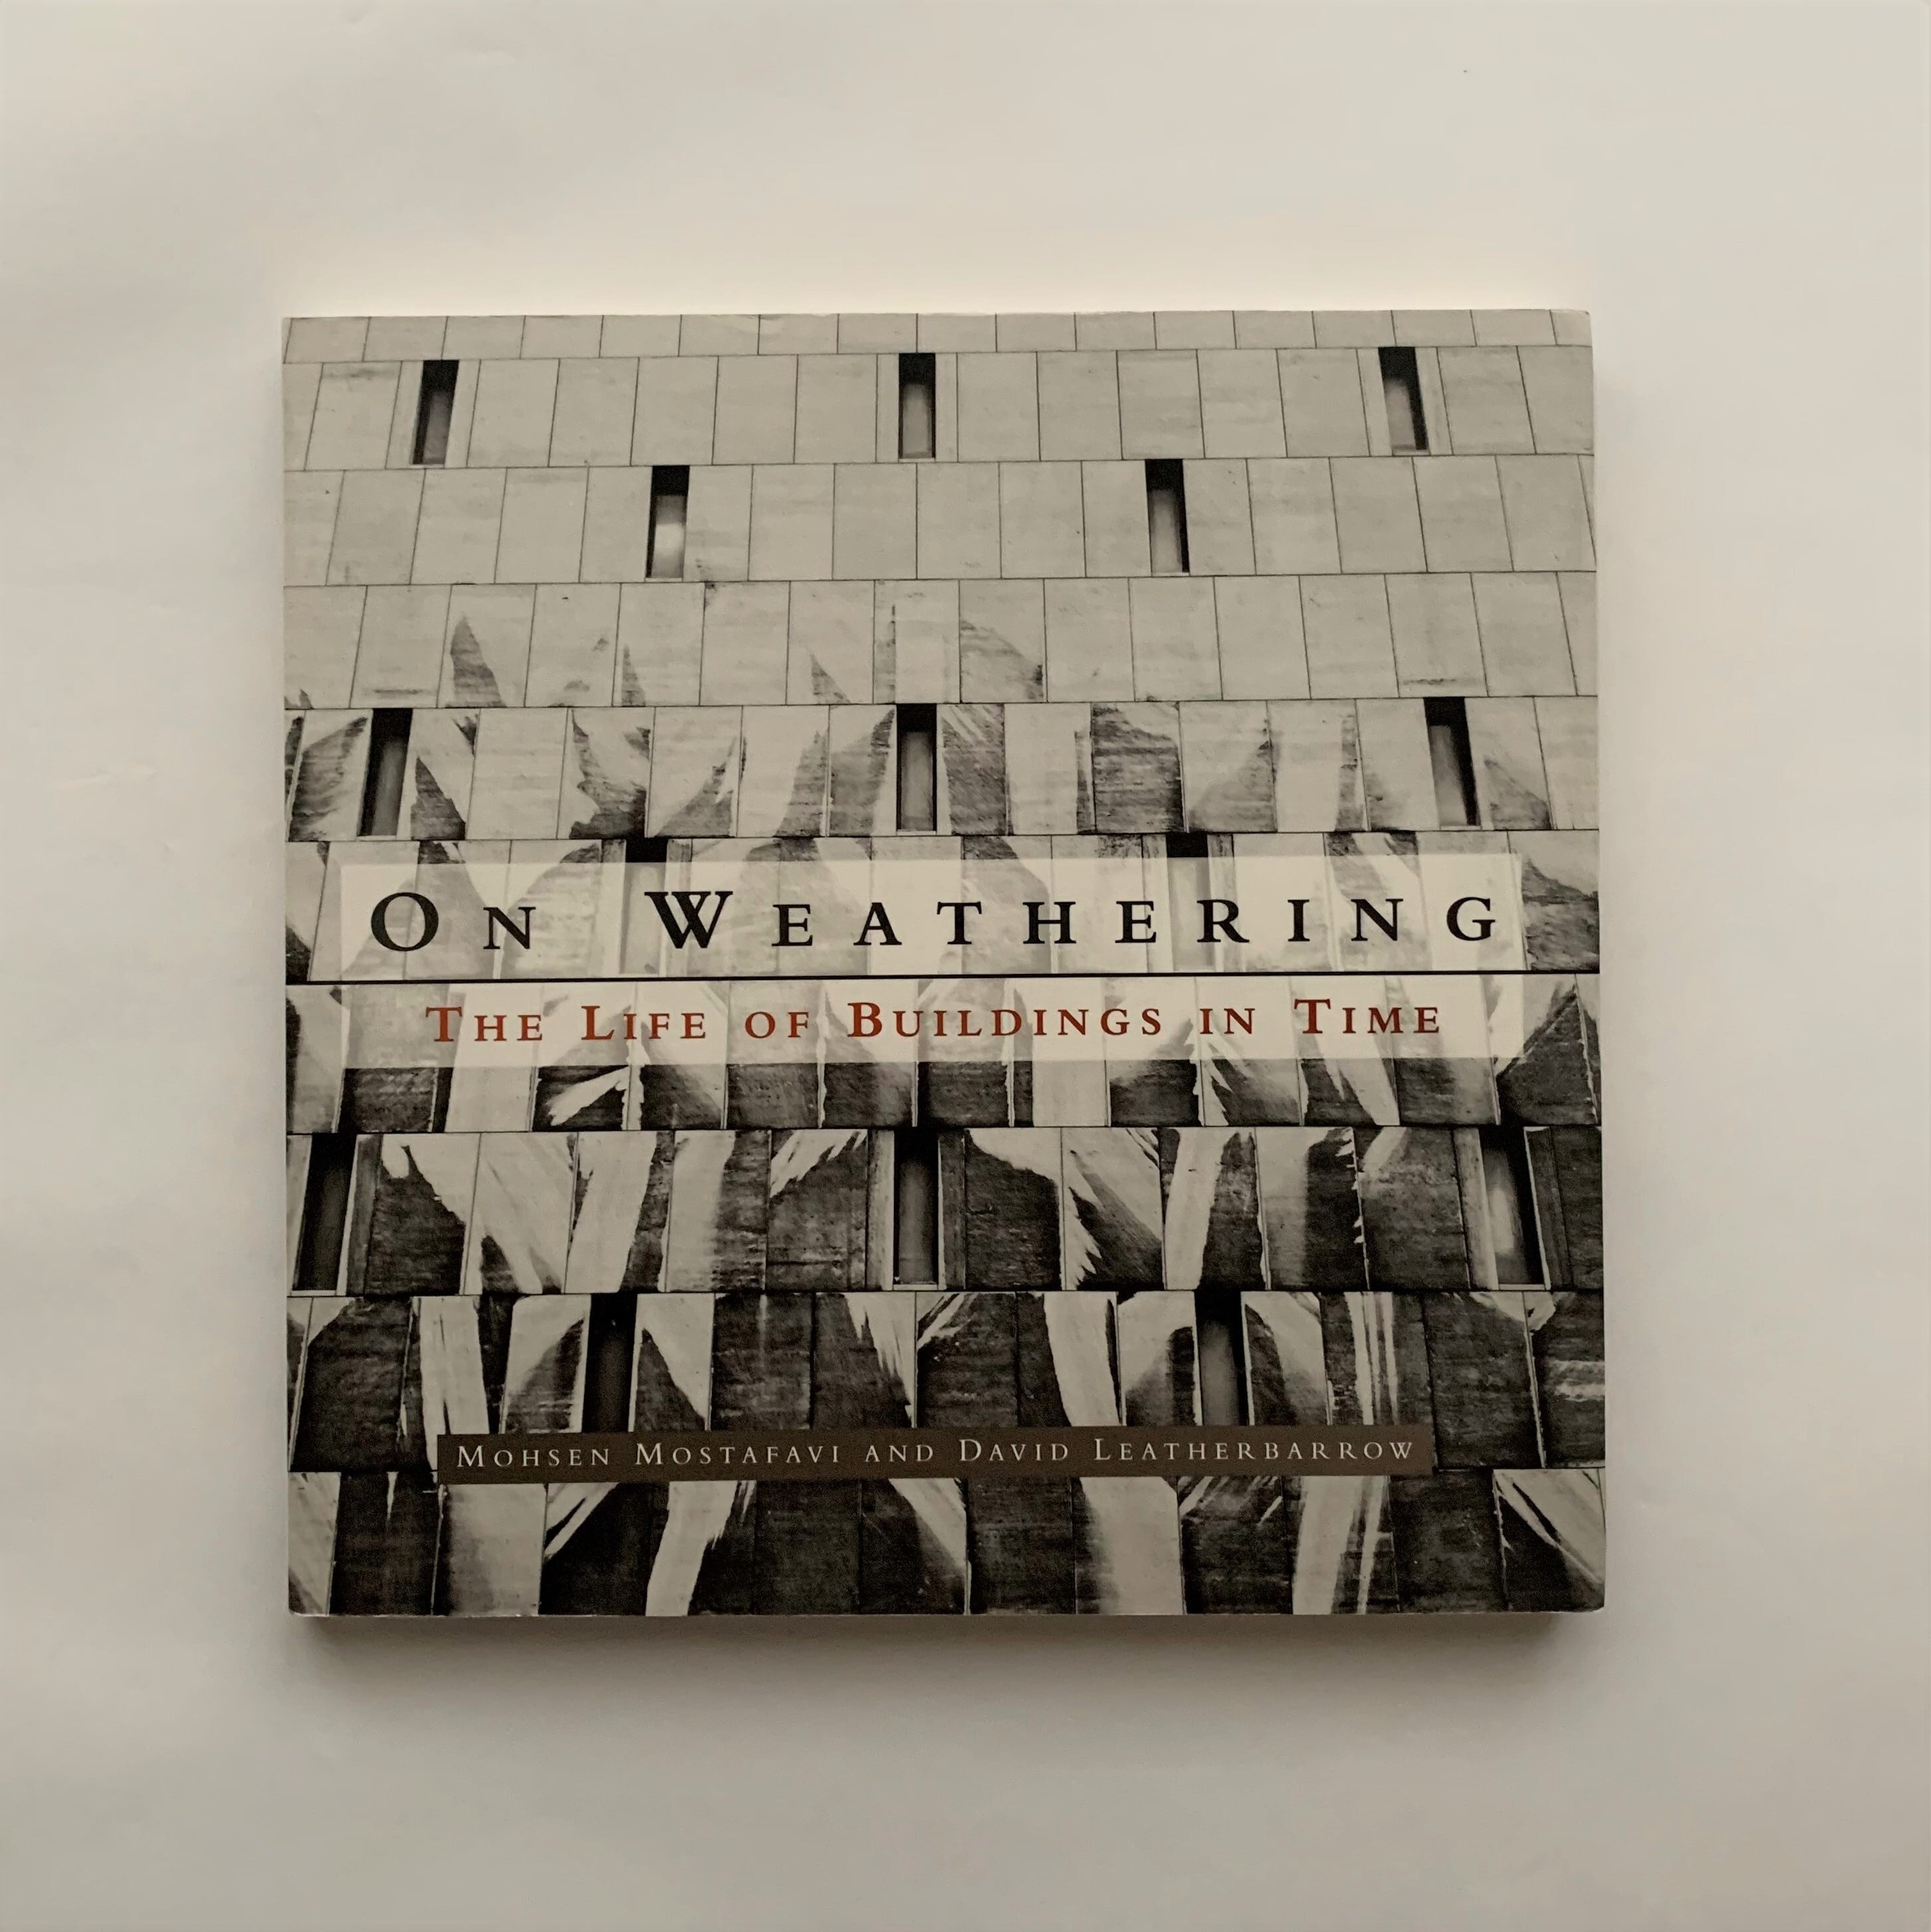 On weathering : the life of buildings in time / Mohsen Mostafavi and David Leatherbarrow